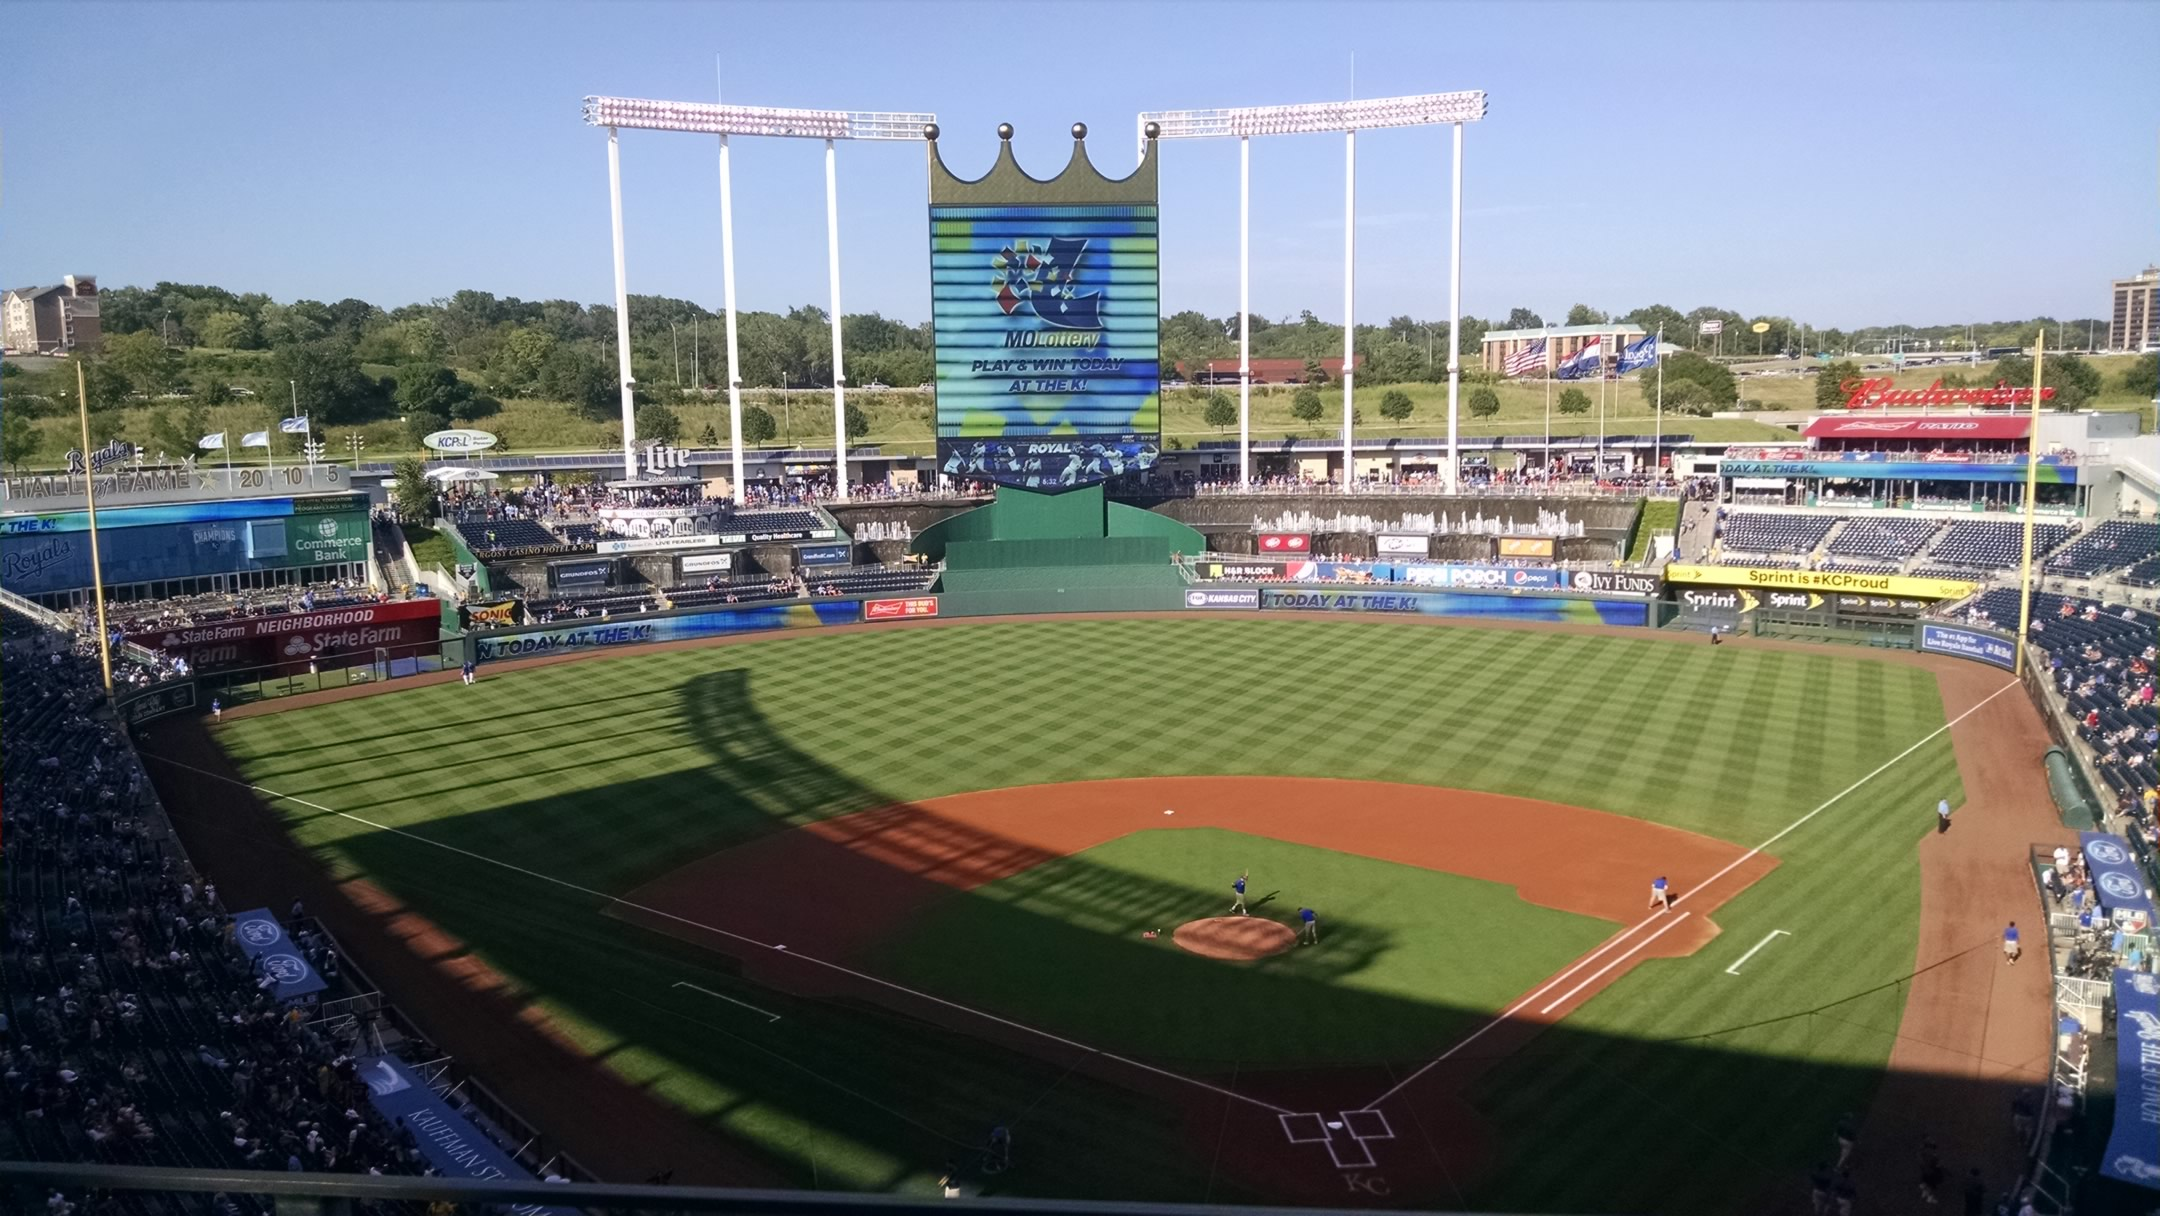 Kauffman Stadium : Row J